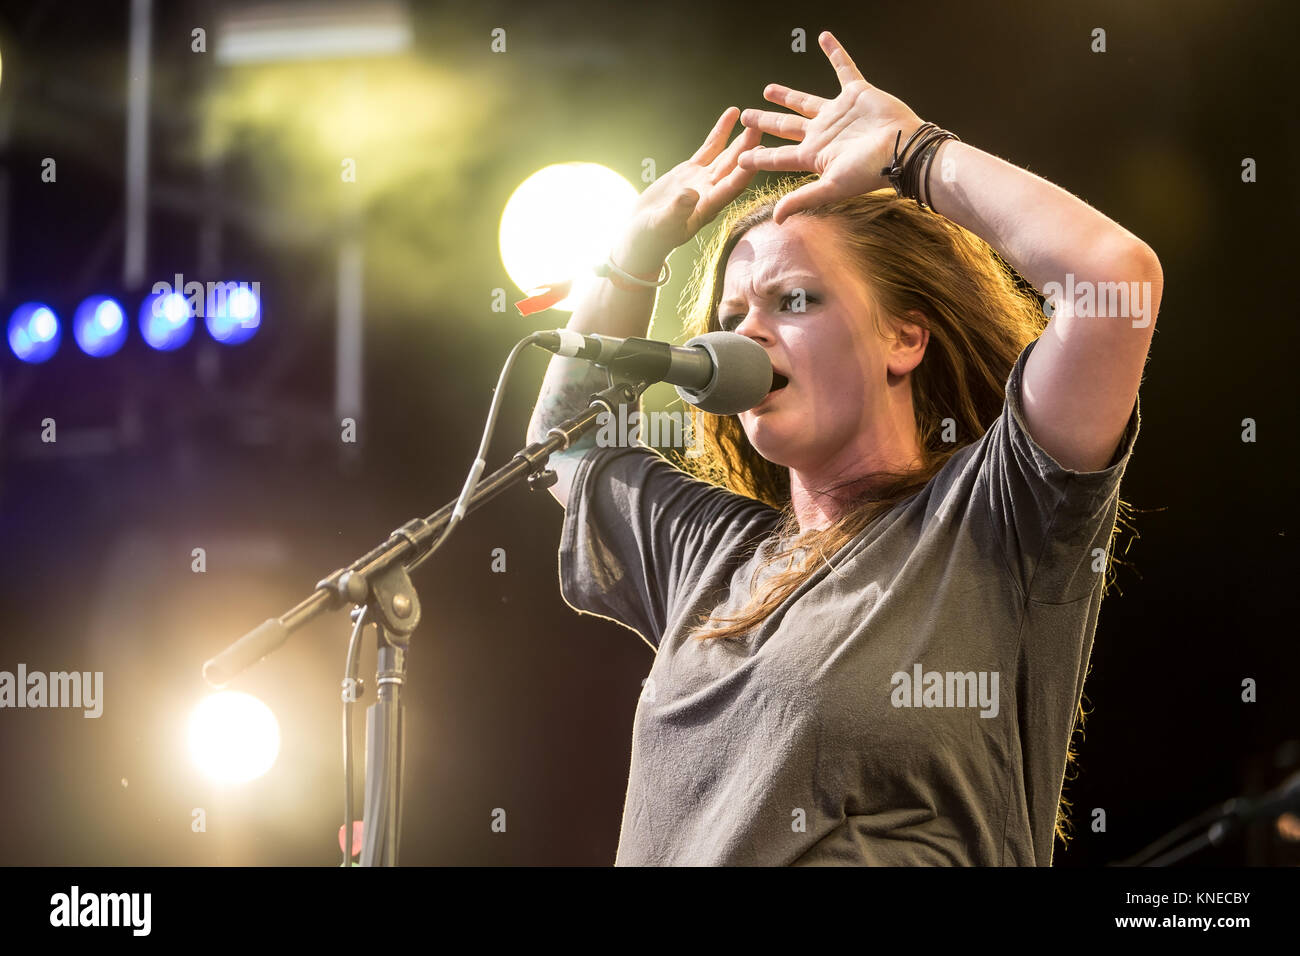 The Norwegian band Katzenjammer performs a live concert at Swiss music festival Gurtenfestival 2015 in Bern. Here - Stock Image